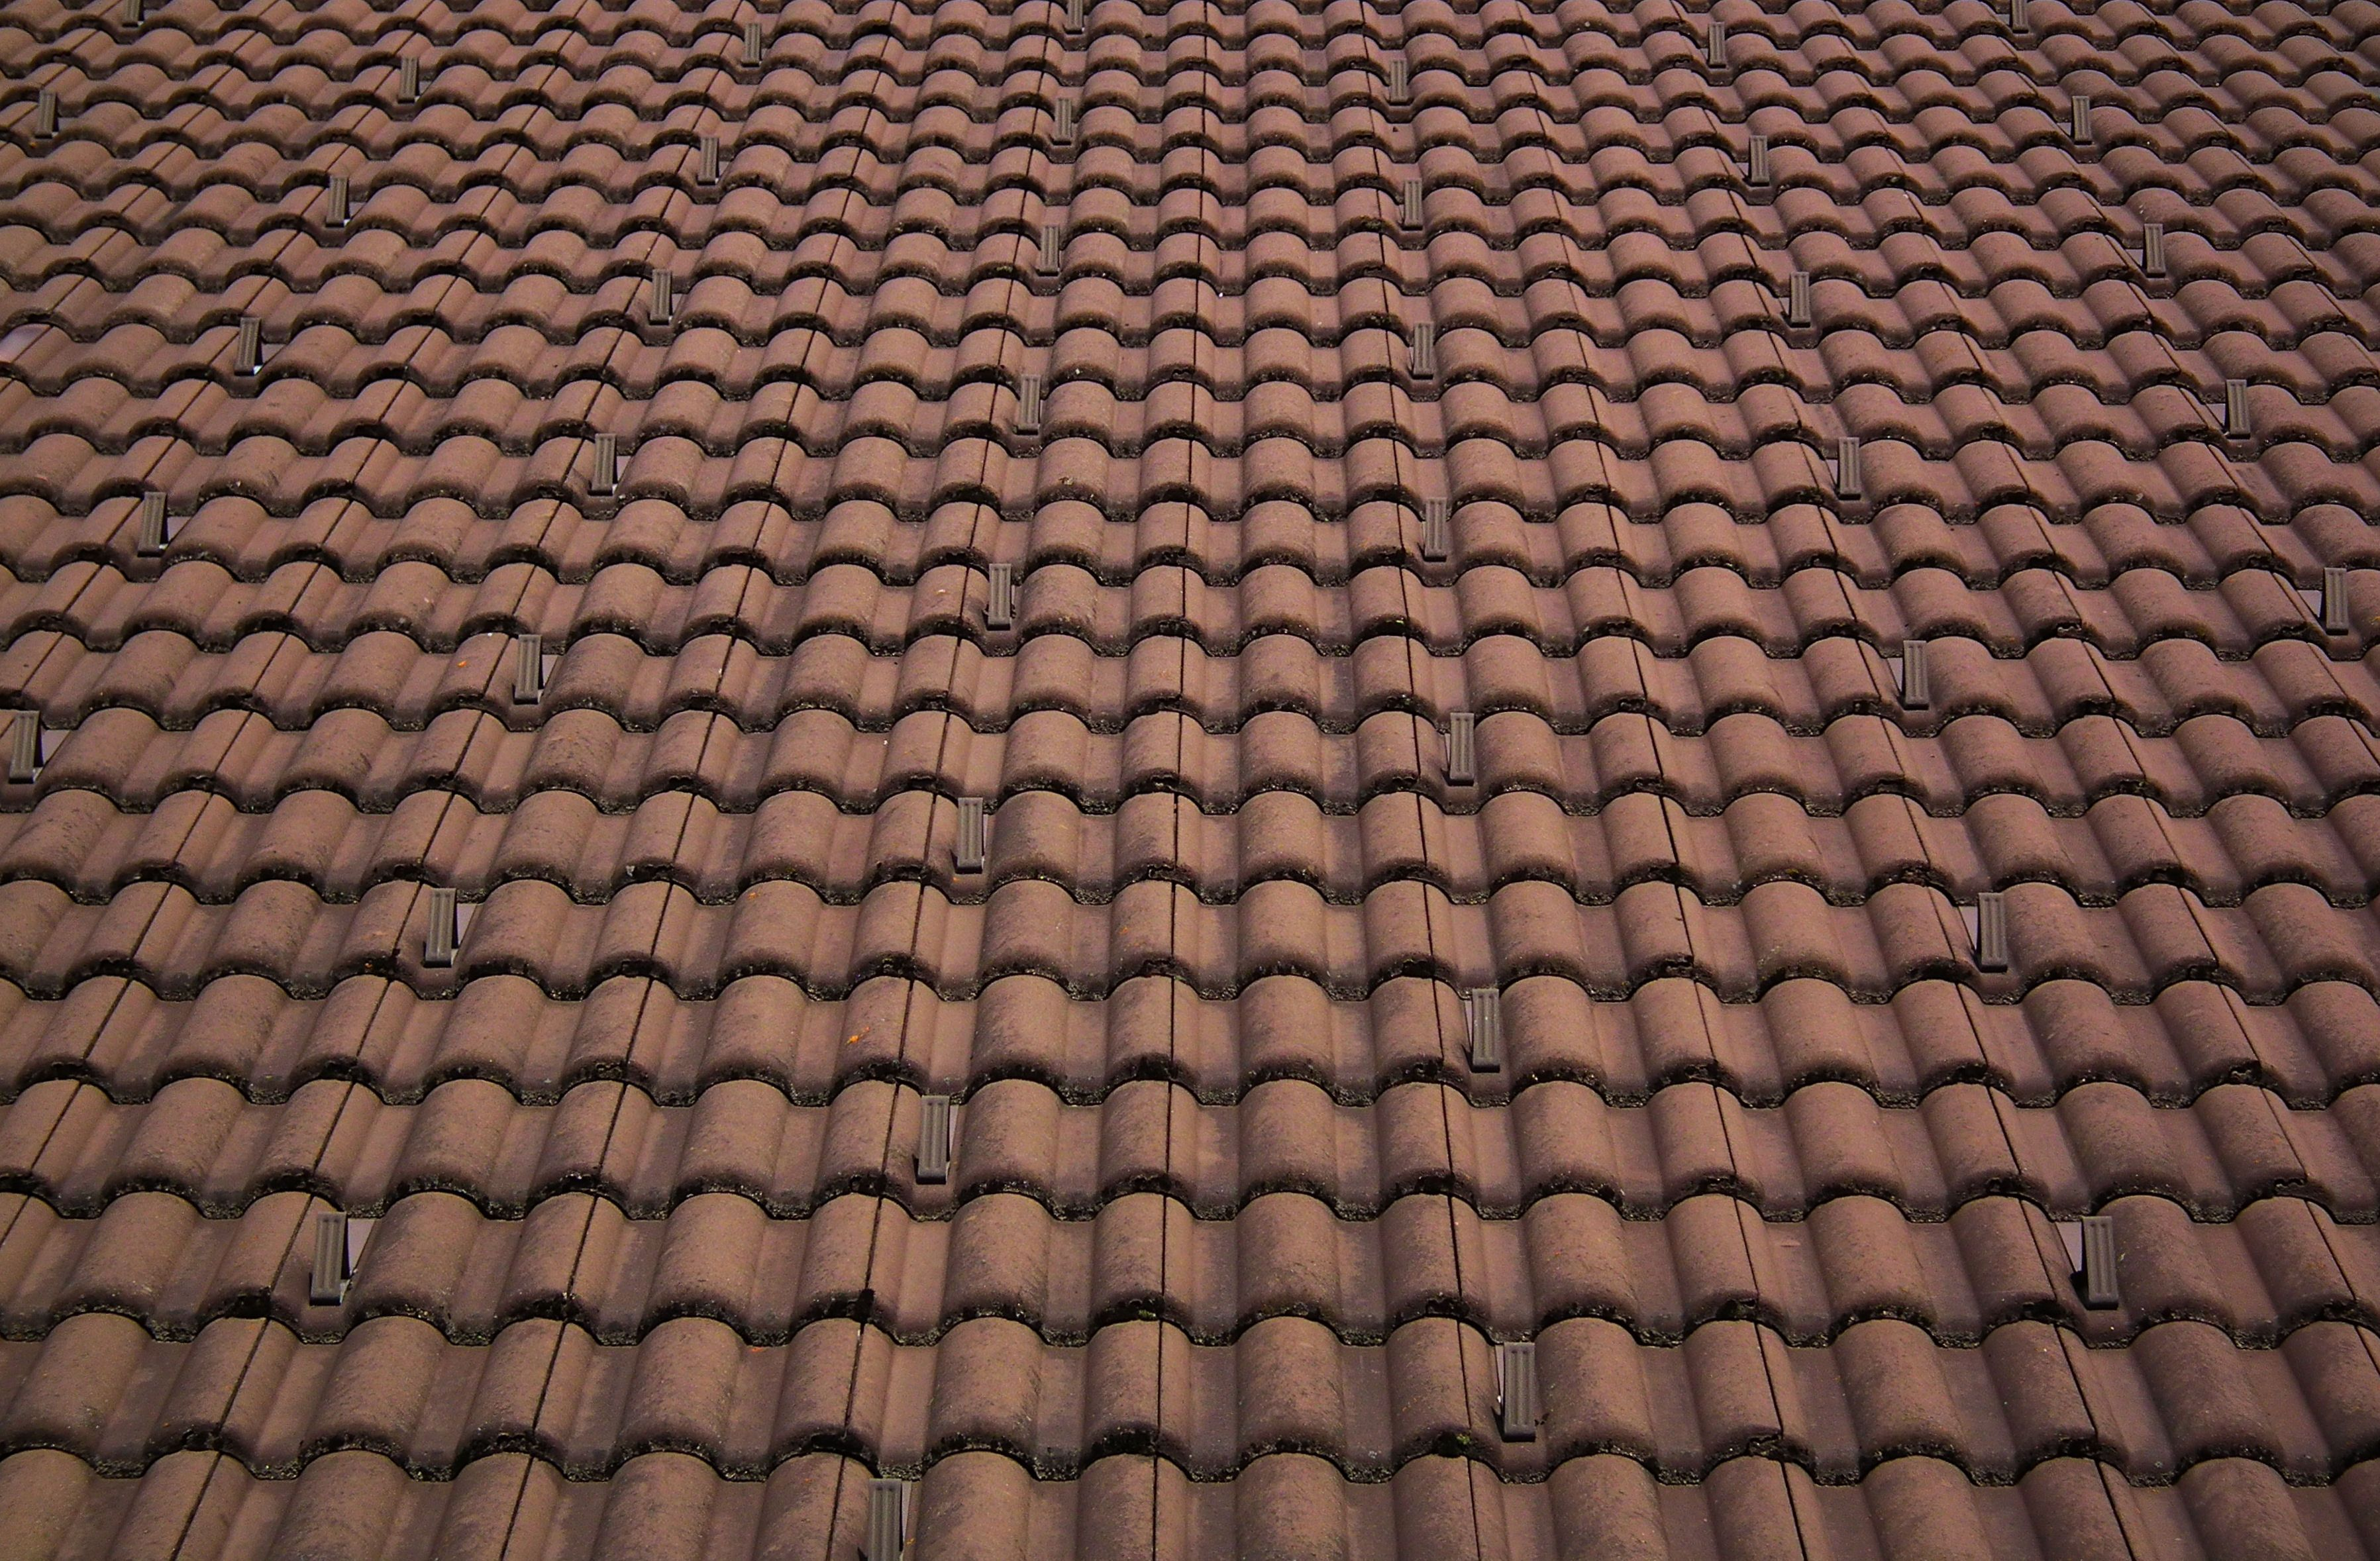 9 Natural Tricks Shed Roofing Gable Old Roofing Tiles Patio Roofing Living Spaces Roofing Ideas Modern Roofing G Brick Roof Modern Roofing Pitched Roof Window